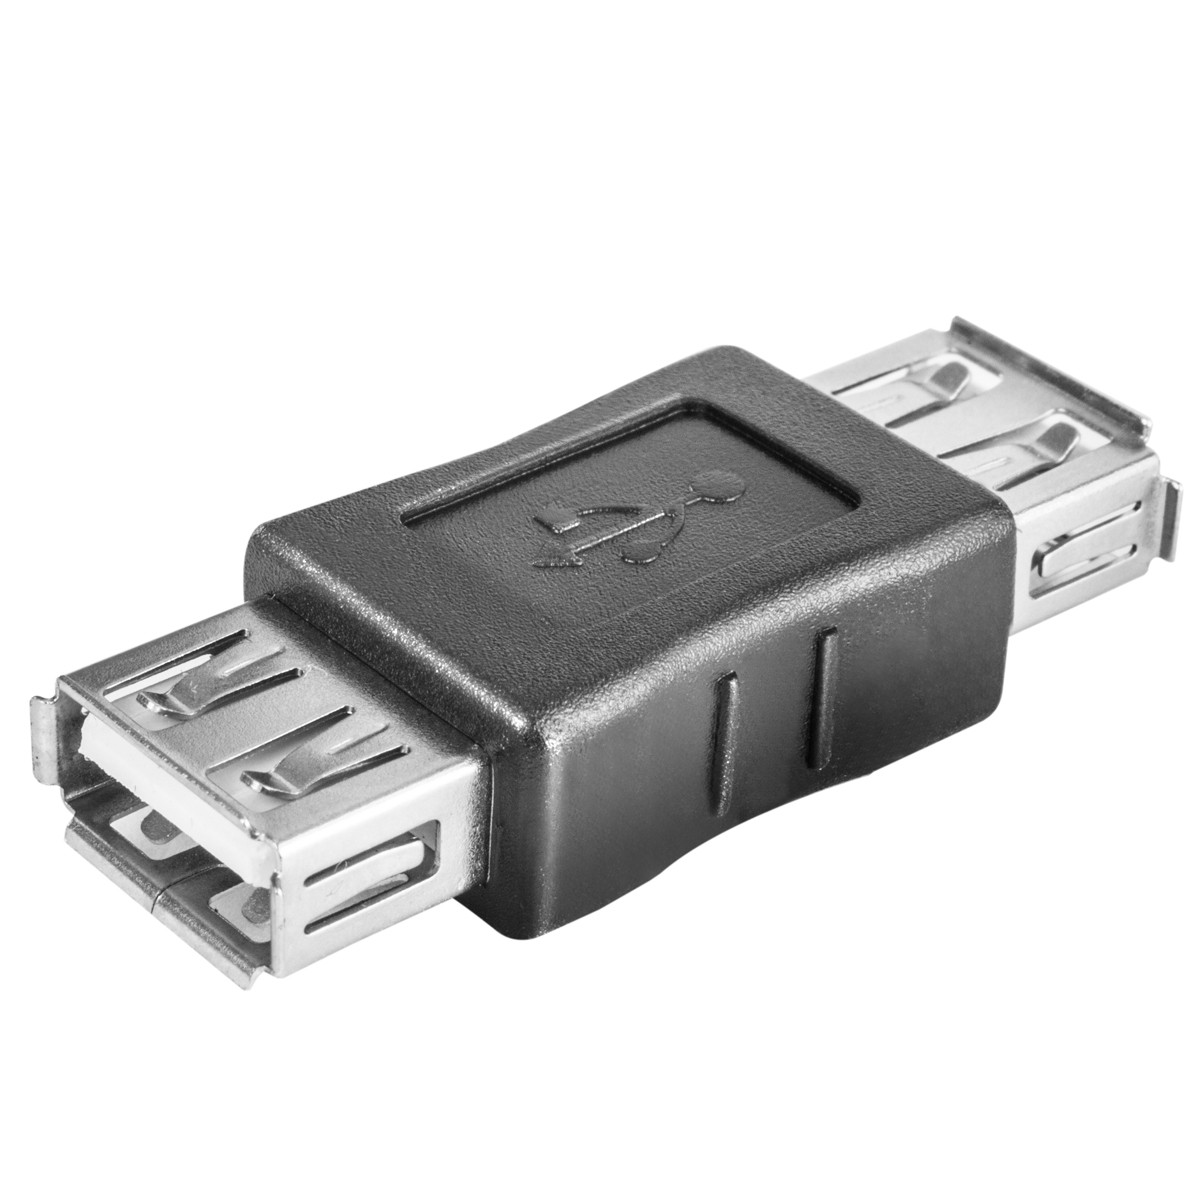 usb adapter verl ngerung a buchse zu a buchse a f a f. Black Bedroom Furniture Sets. Home Design Ideas